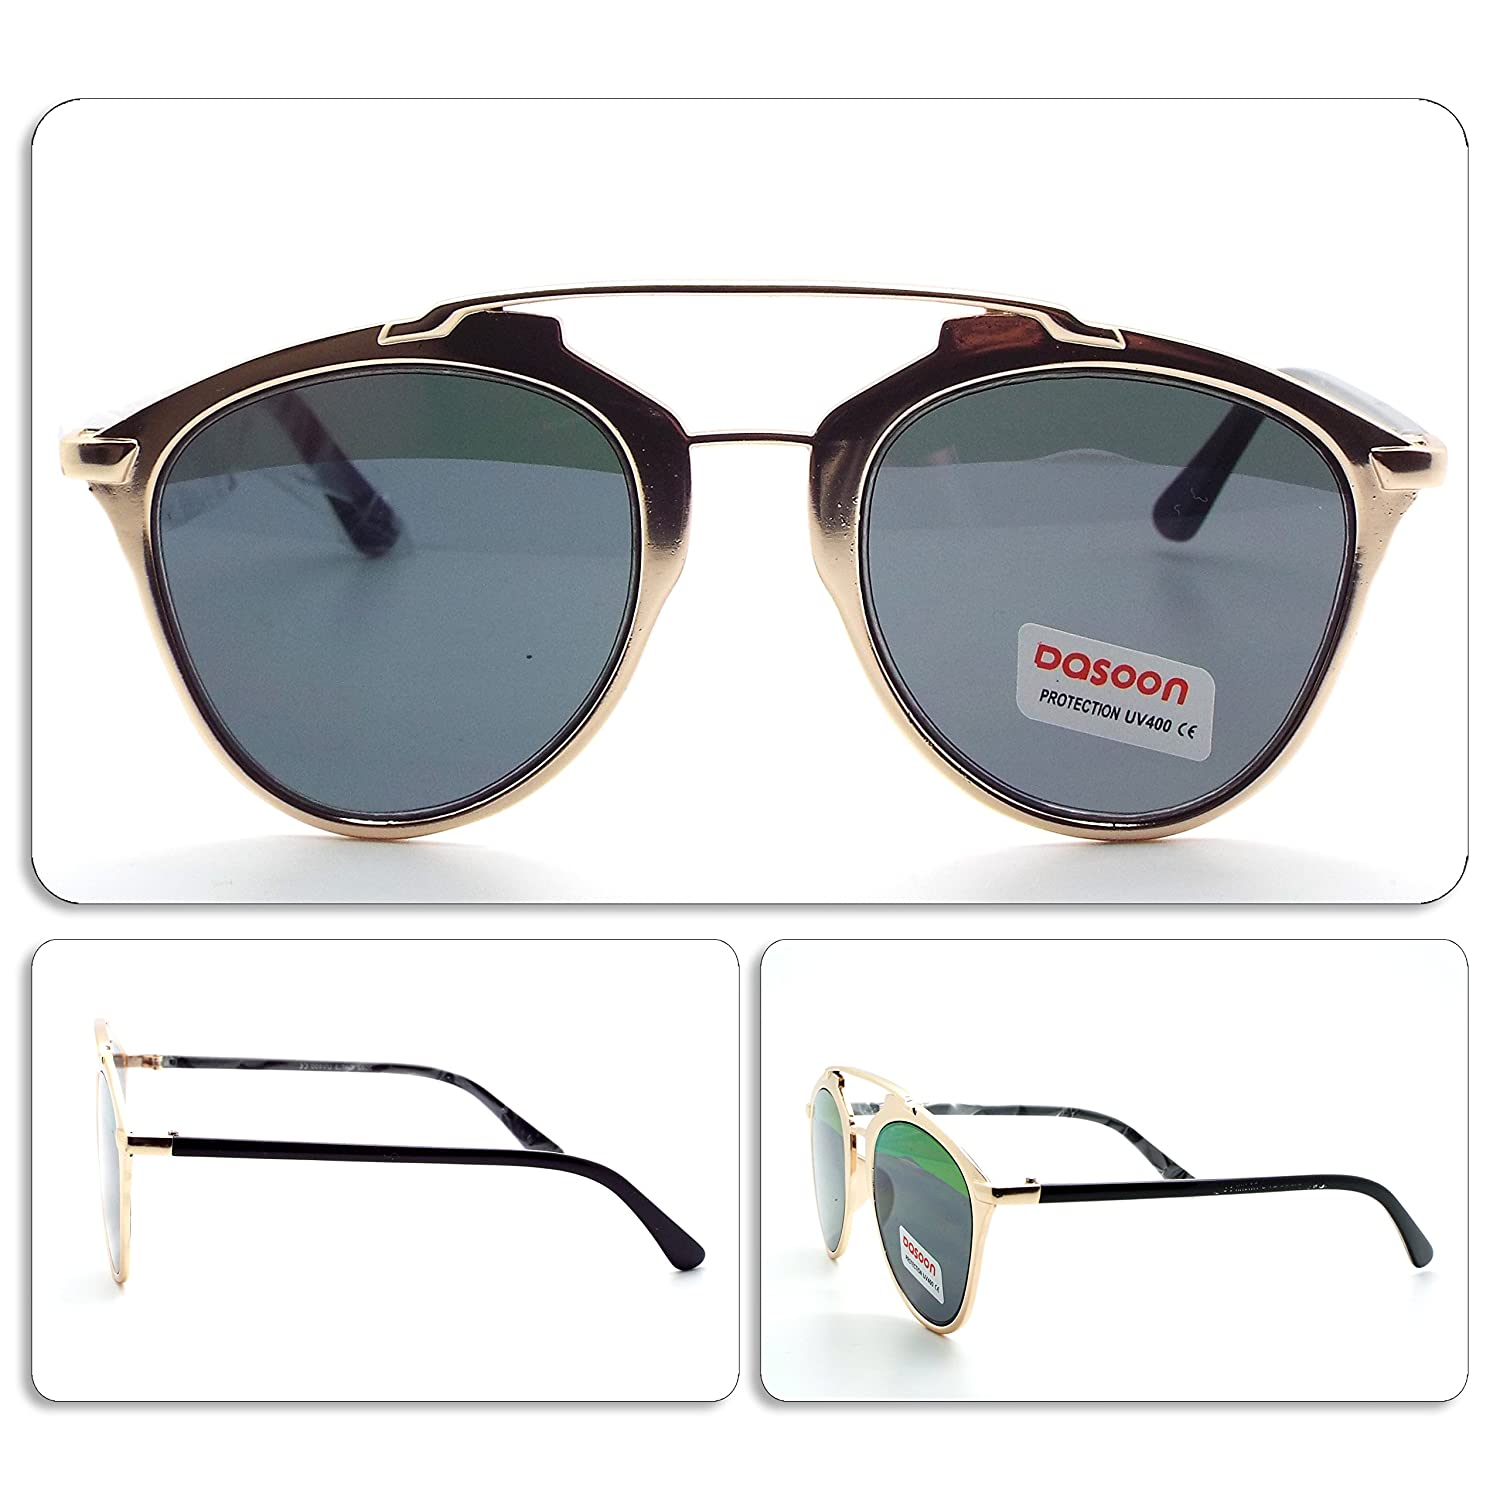 OCCHIALI DA SOLE sunglasses UOMO DONNA UNISEX GOLD ART. 059